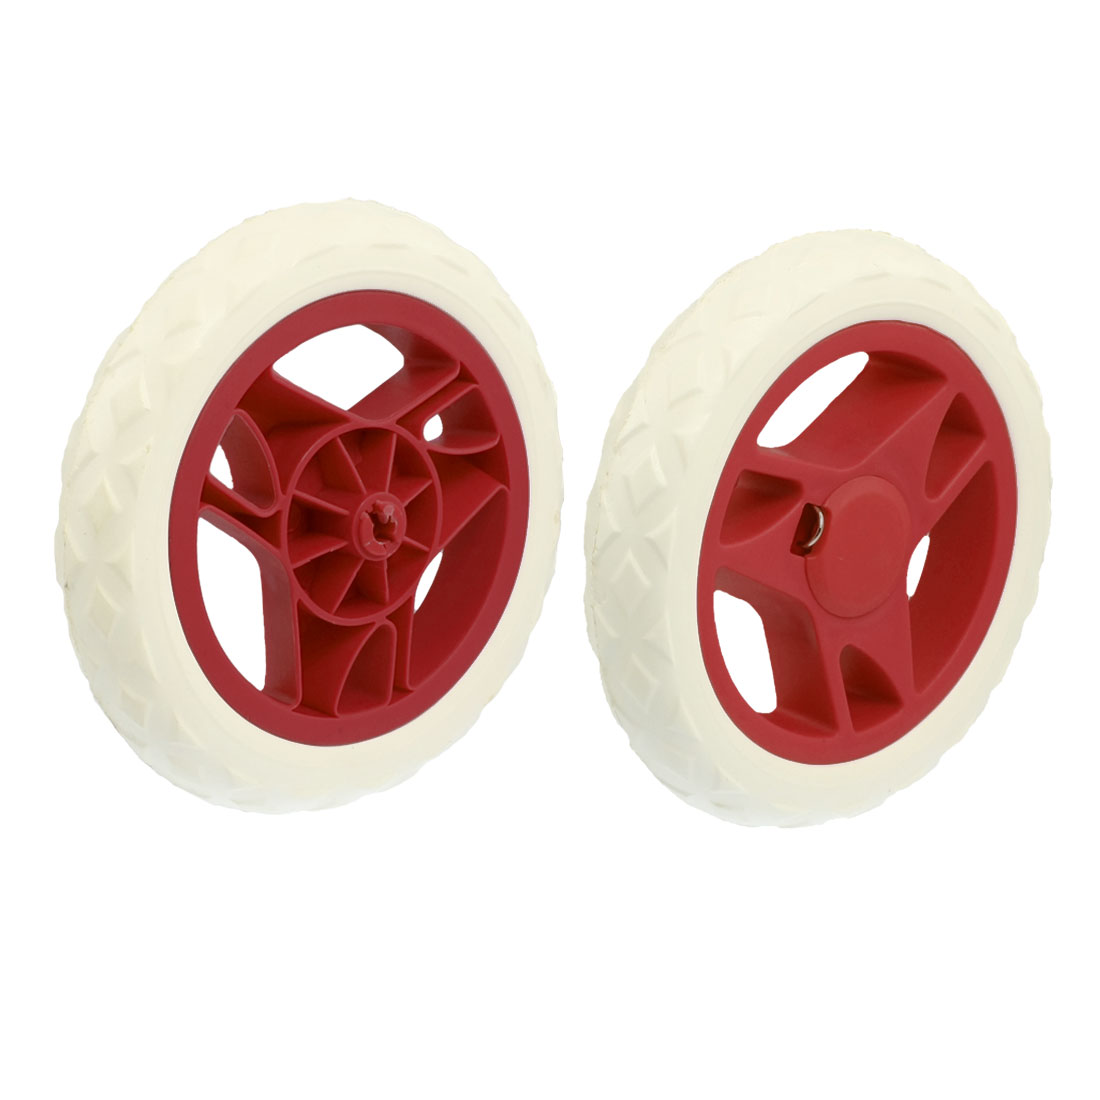 2 Pcs White Hot Wheel Design Shopping Cart Caster Wheels